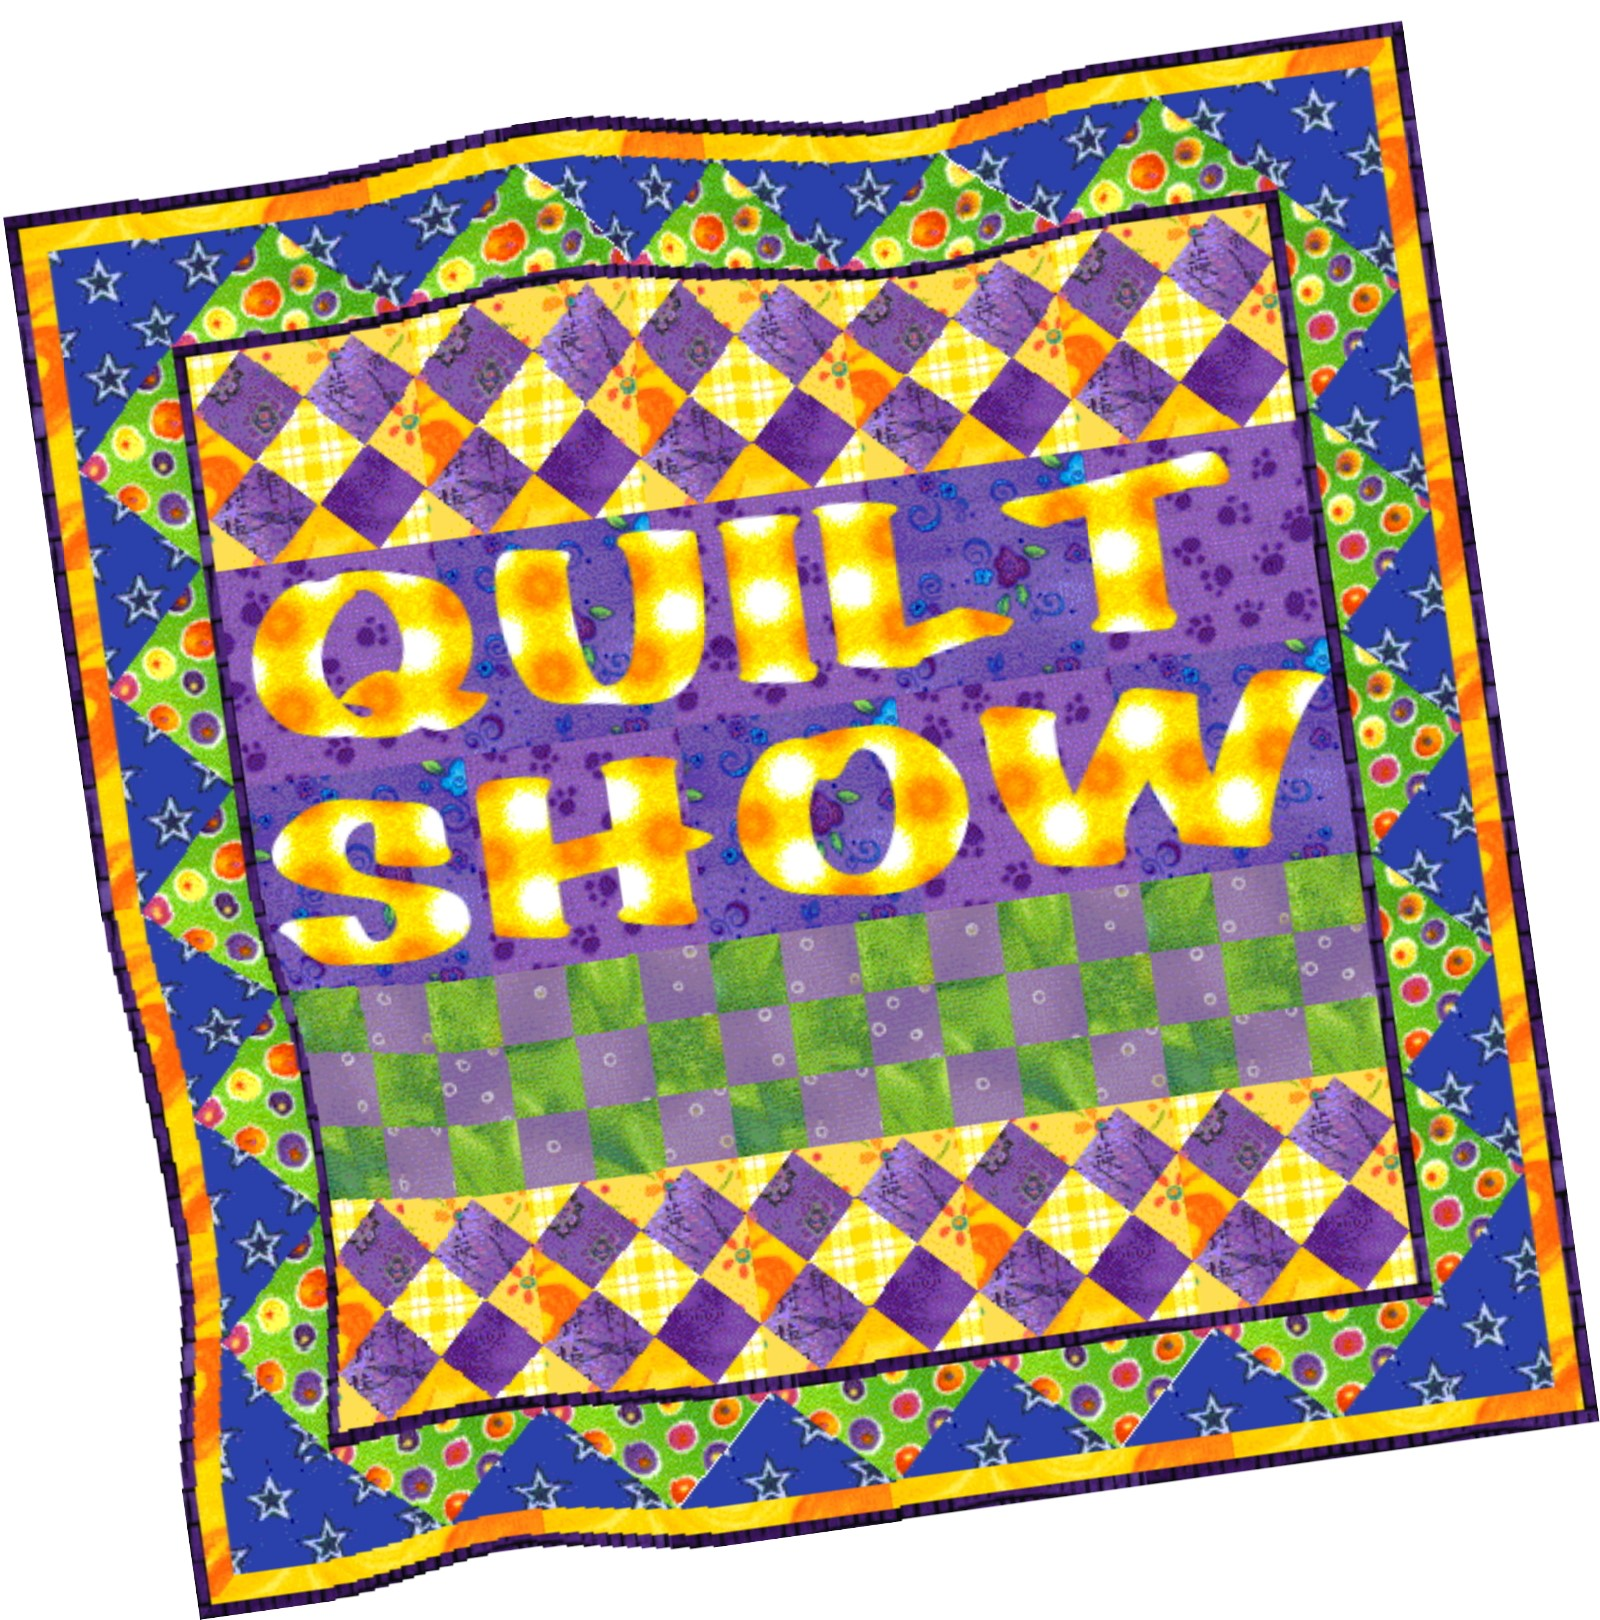 Free clip art download. Quilting clipart quilt frame